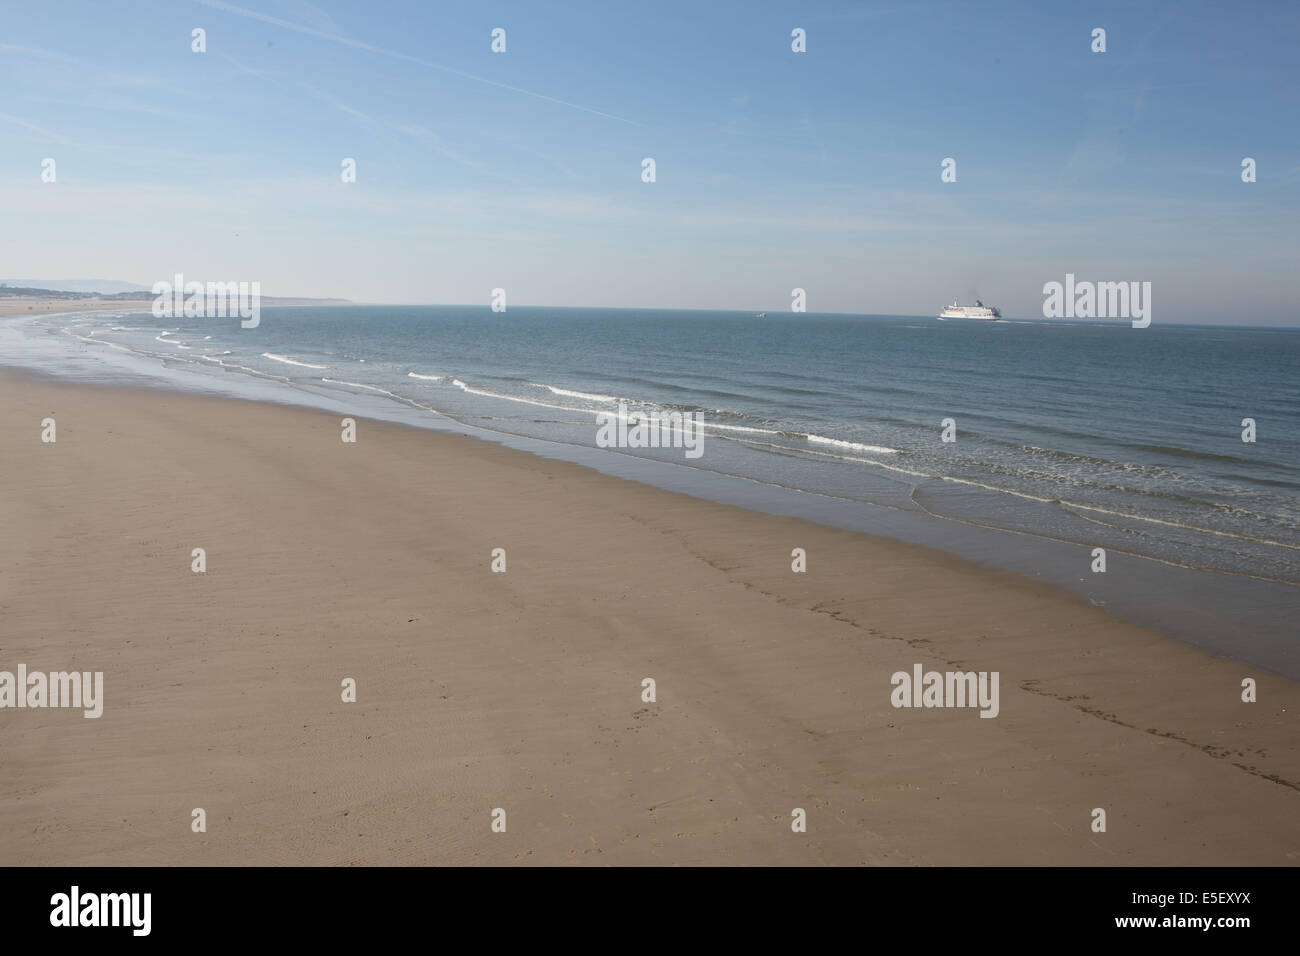 France, région nord, pas de calais, Calais, plage, mer du nord, sable, ferry a l'horizon, Photo Stock